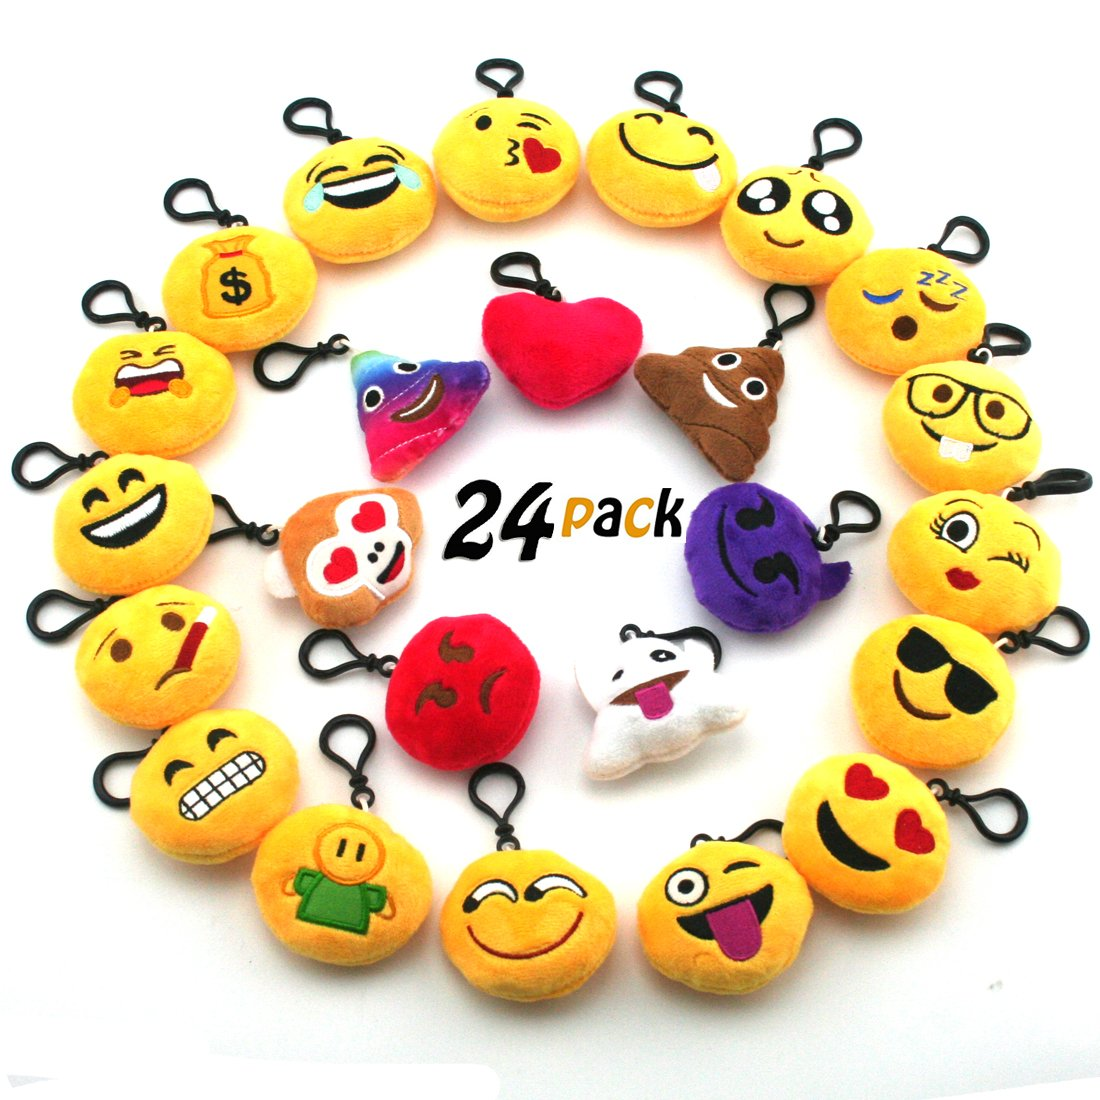 JACHAM Novelty Toys Emoji Keychain, Emotion Plush Pillow,Kids Party Supplies Favors,Keychain Decorations 2.4'' Set of 24 Pack